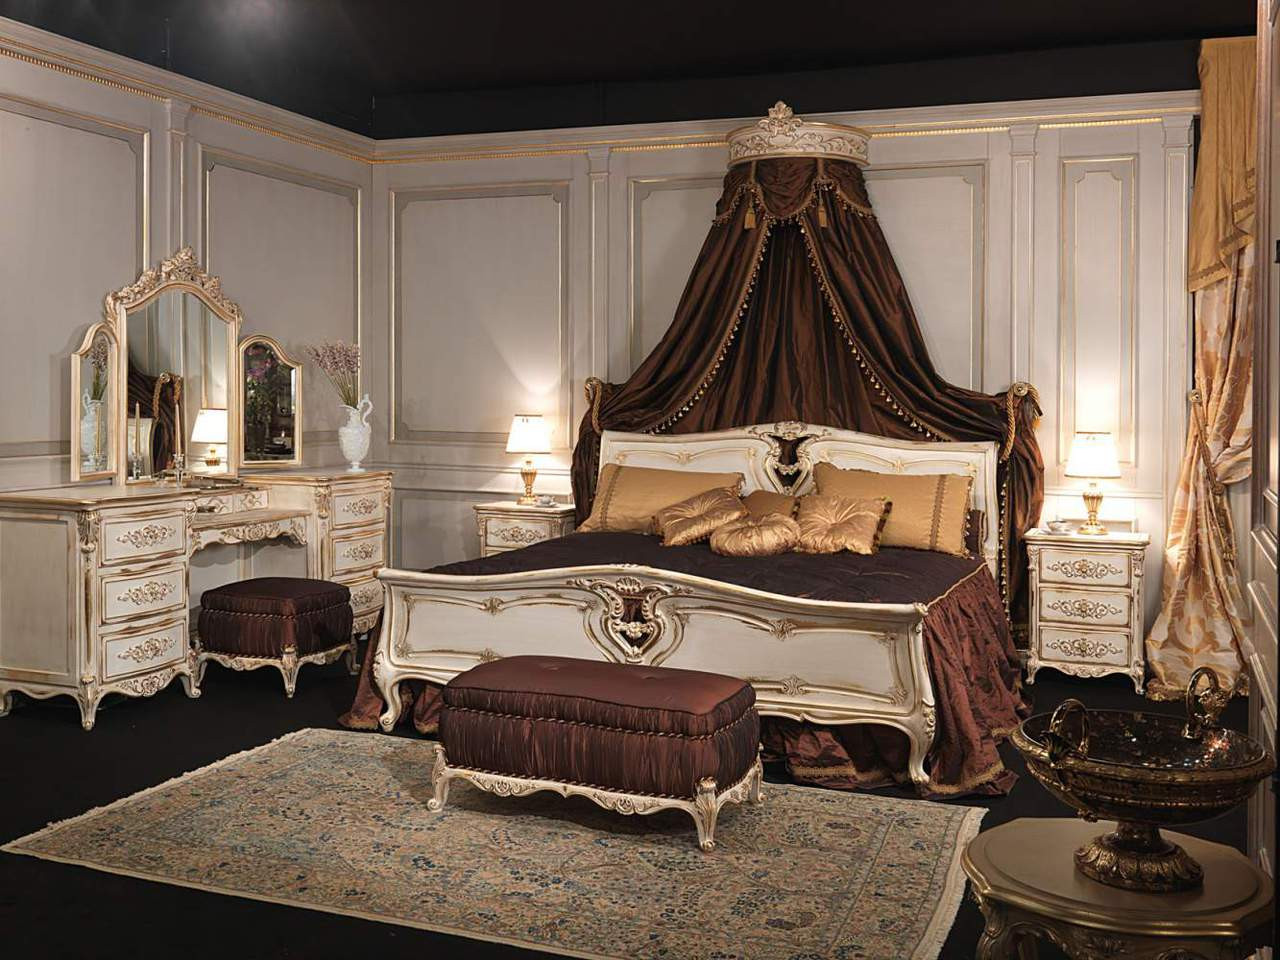 Louis Xvi Bed Set French Bedroom Furniture Designer Bed